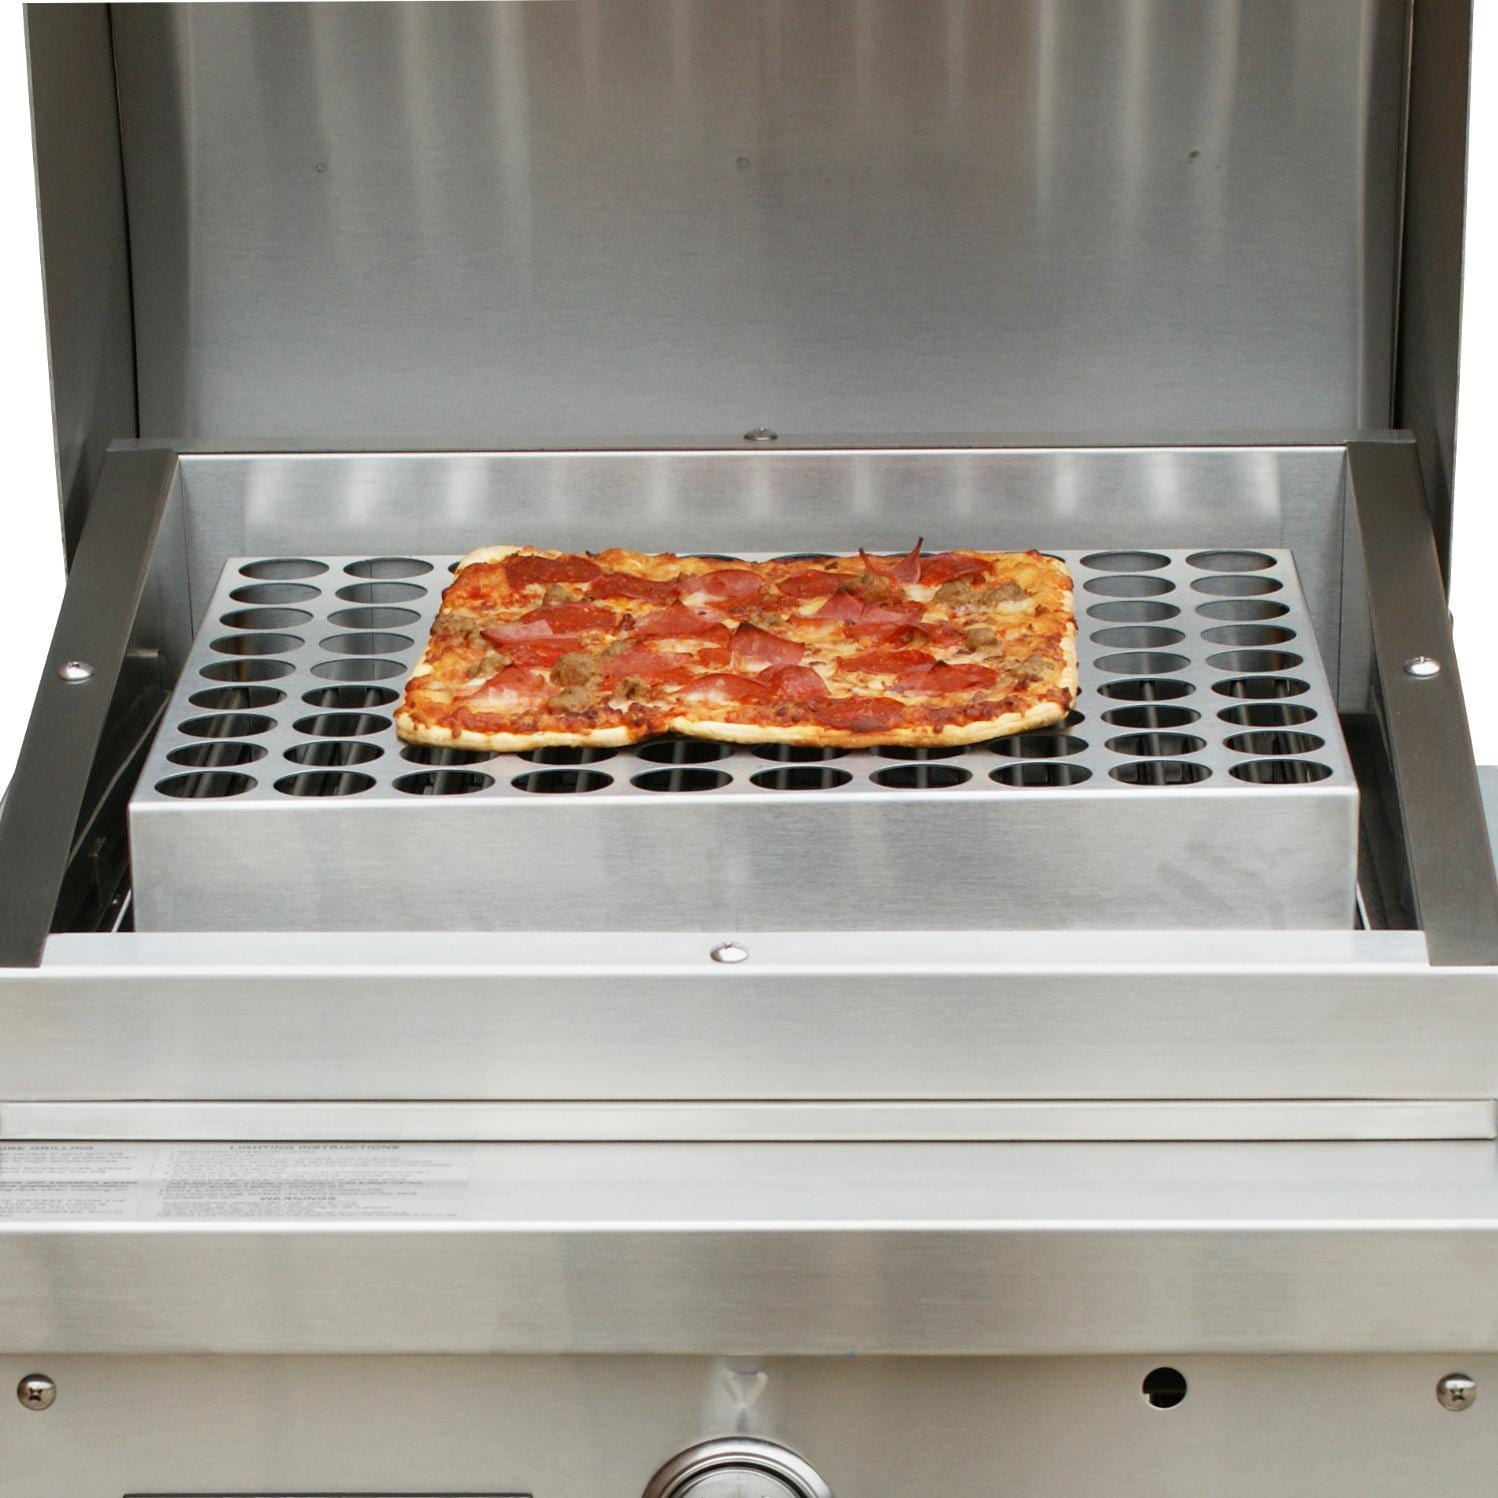 TEC Patio FR Series Stainless Steel Pizza Rack - Full View (Shown on Grill - Not Included)